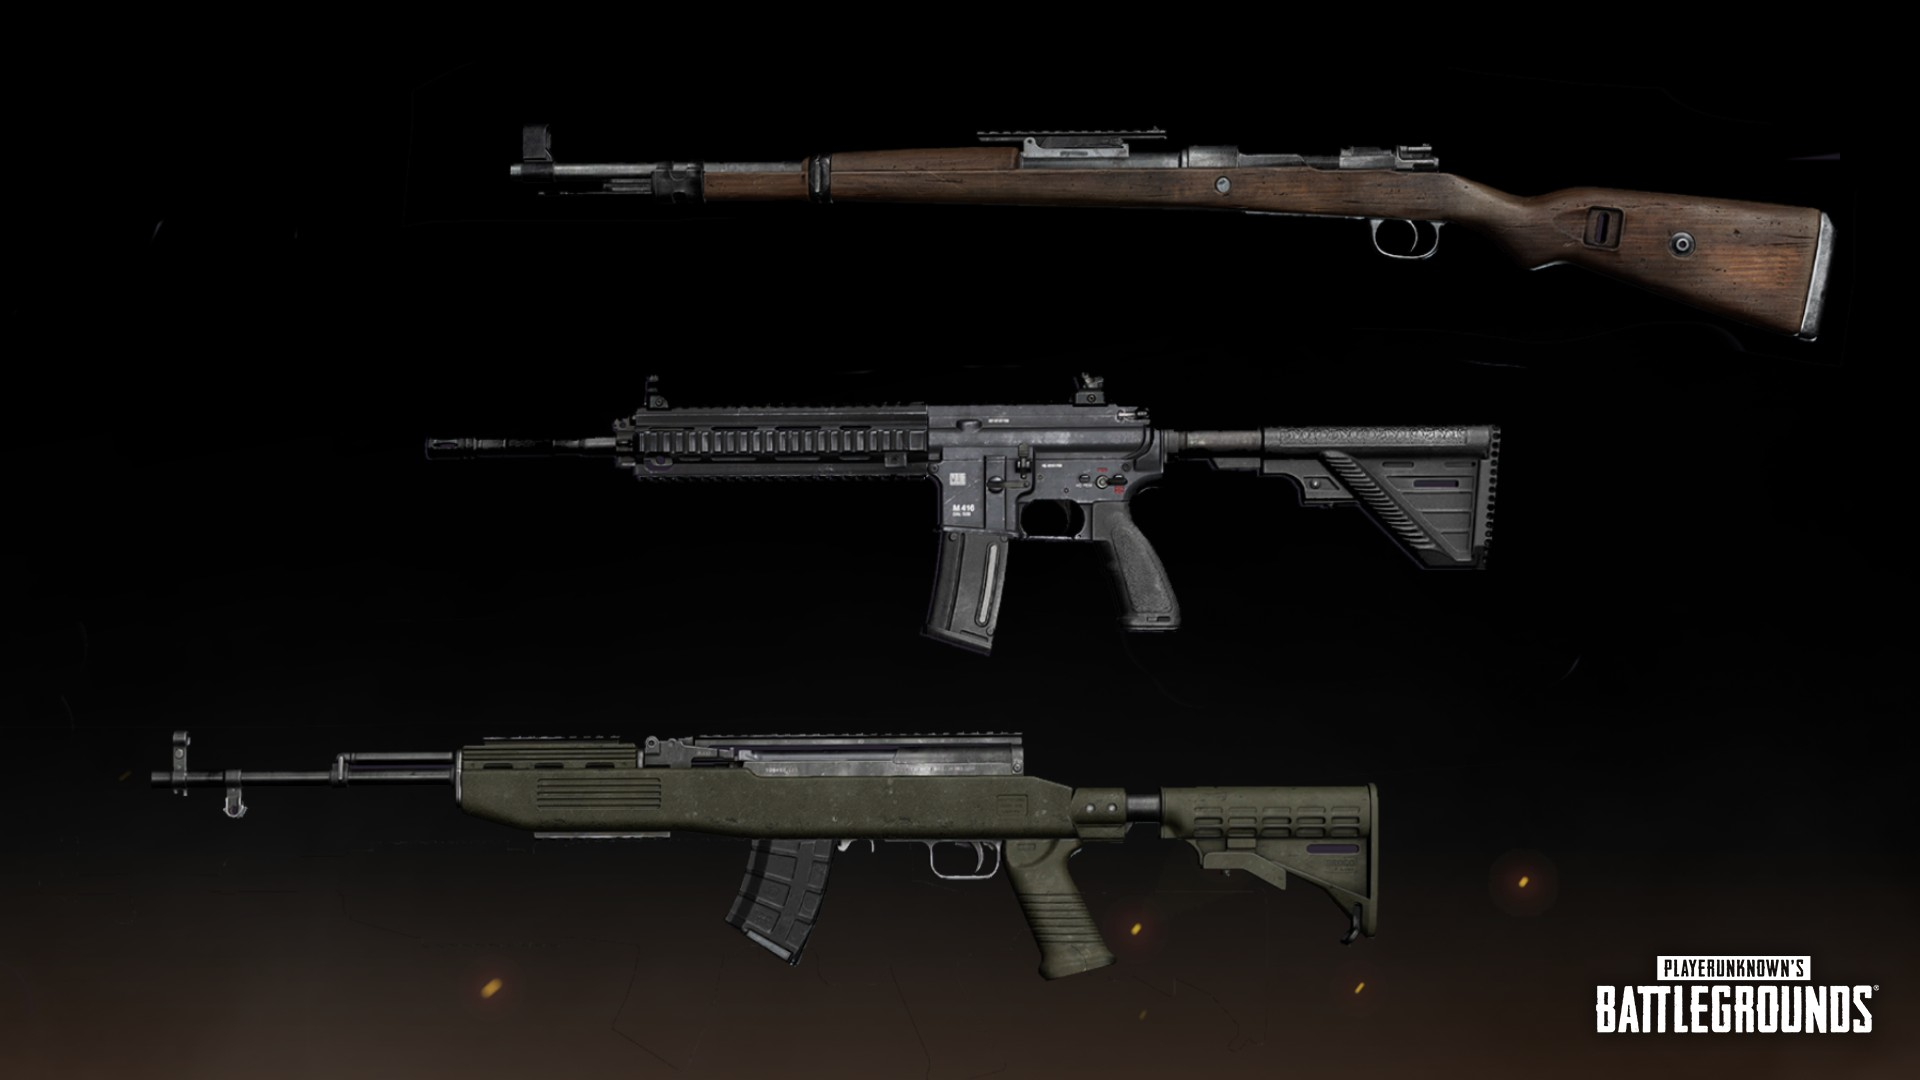 The best PUBG guns - what are the weapons to take? | GamesRadar+